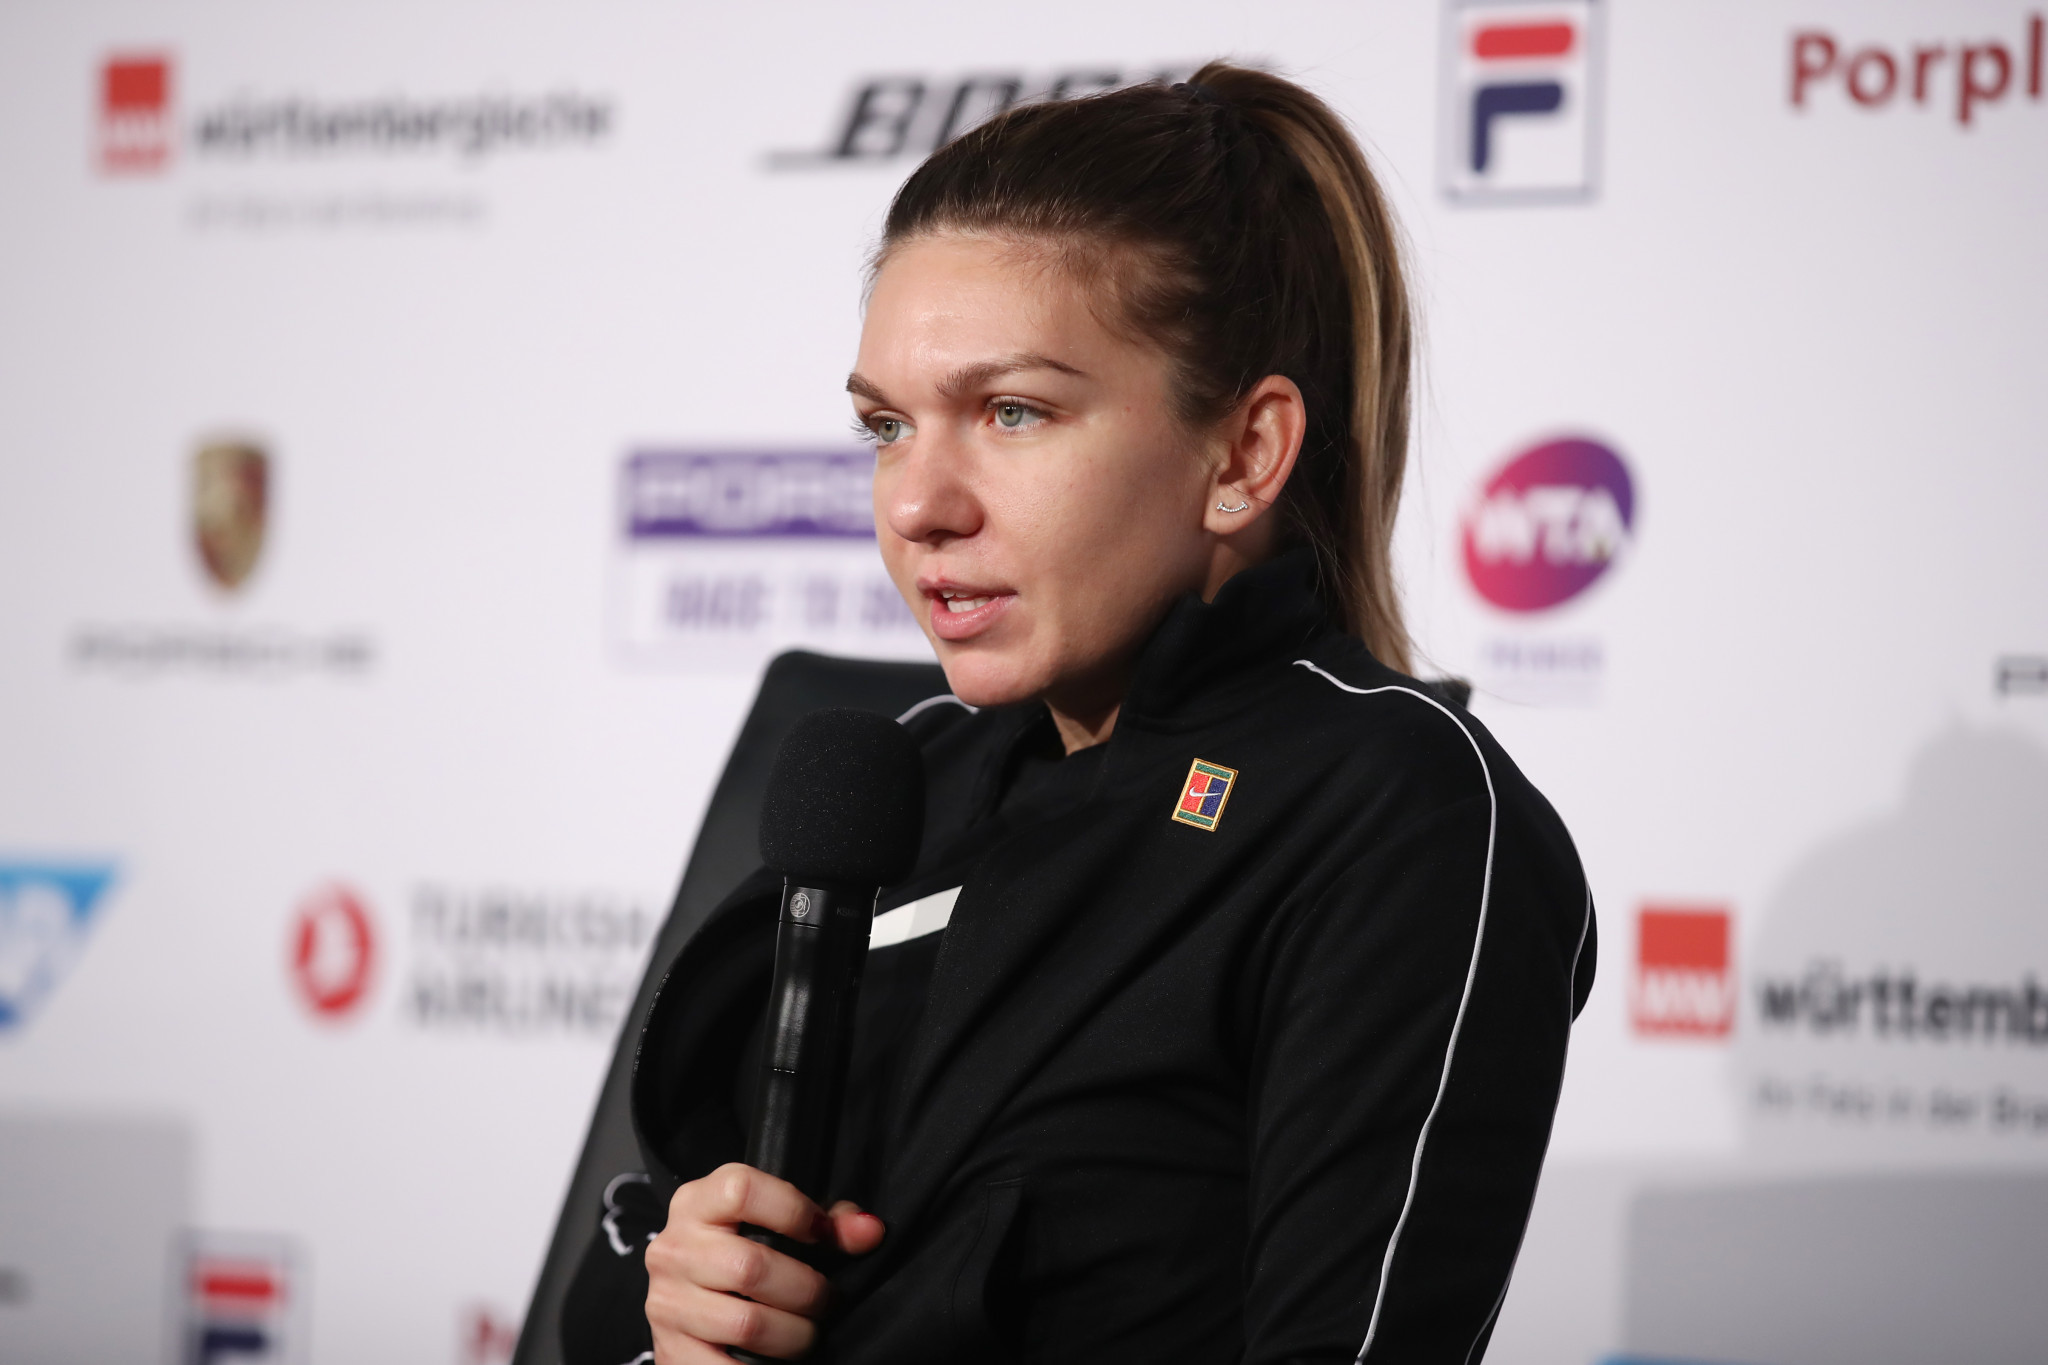 Second seed Halep pulls out of WTA Stuttgart Open with hip injury